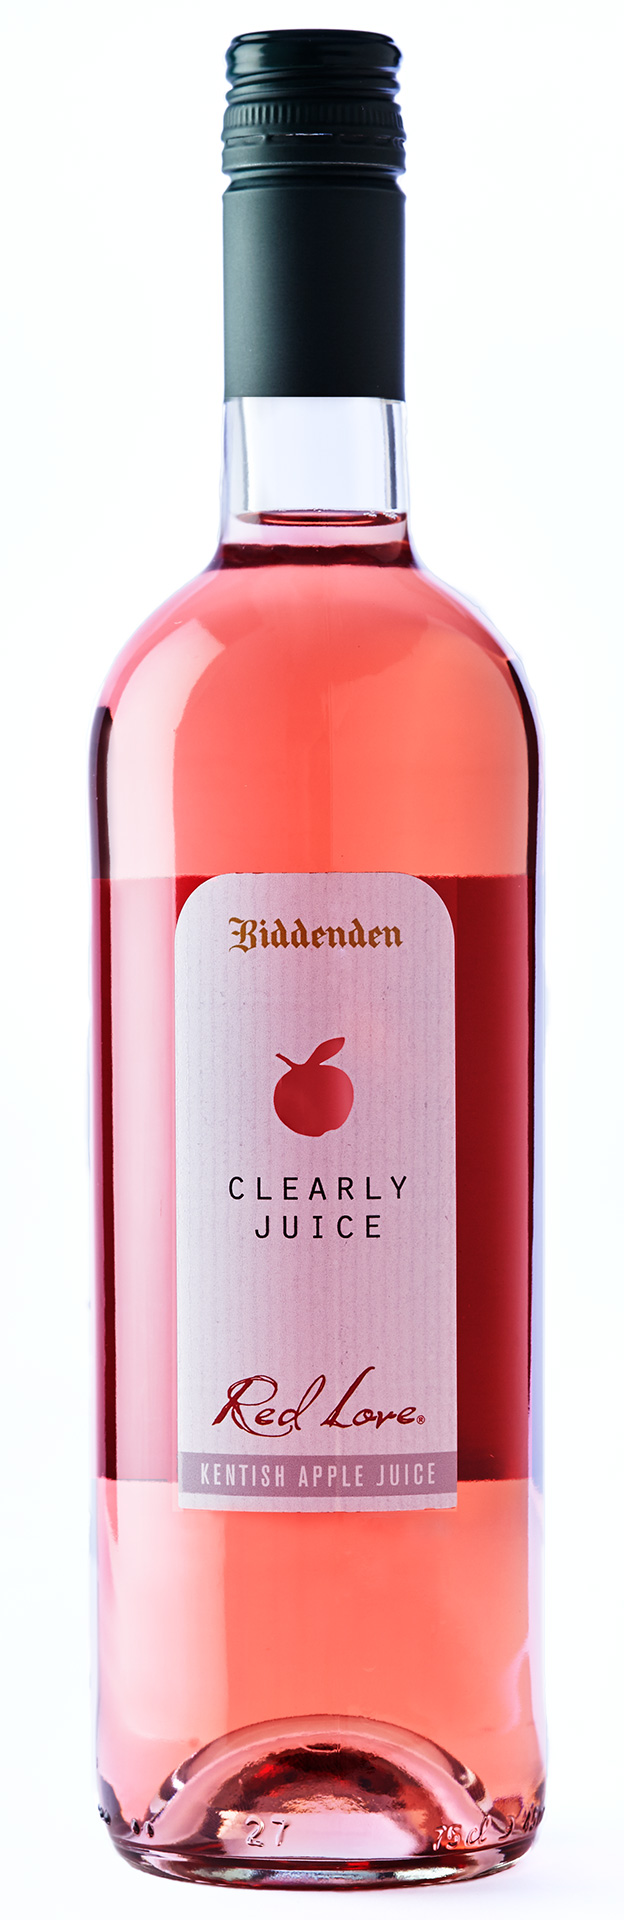 red-love-clearly-juice